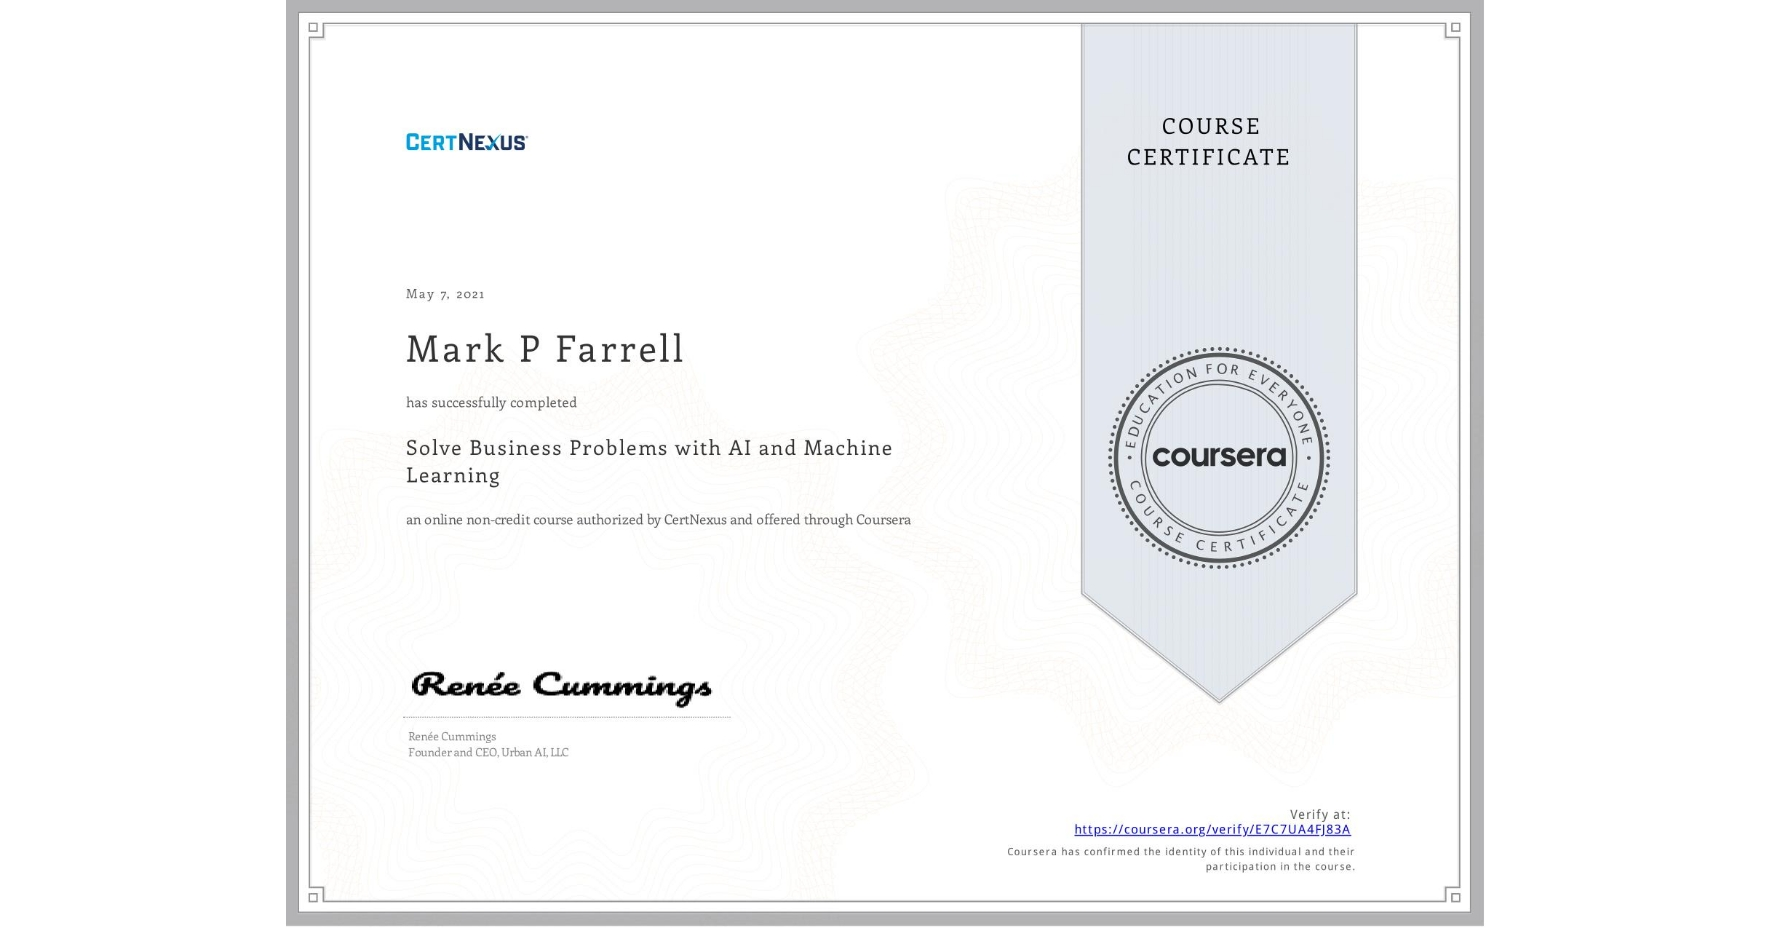 View certificate for Mark P Farrell, Solve Business Problems with AI and Machine Learning, an online non-credit course authorized by CertNexus and offered through Coursera